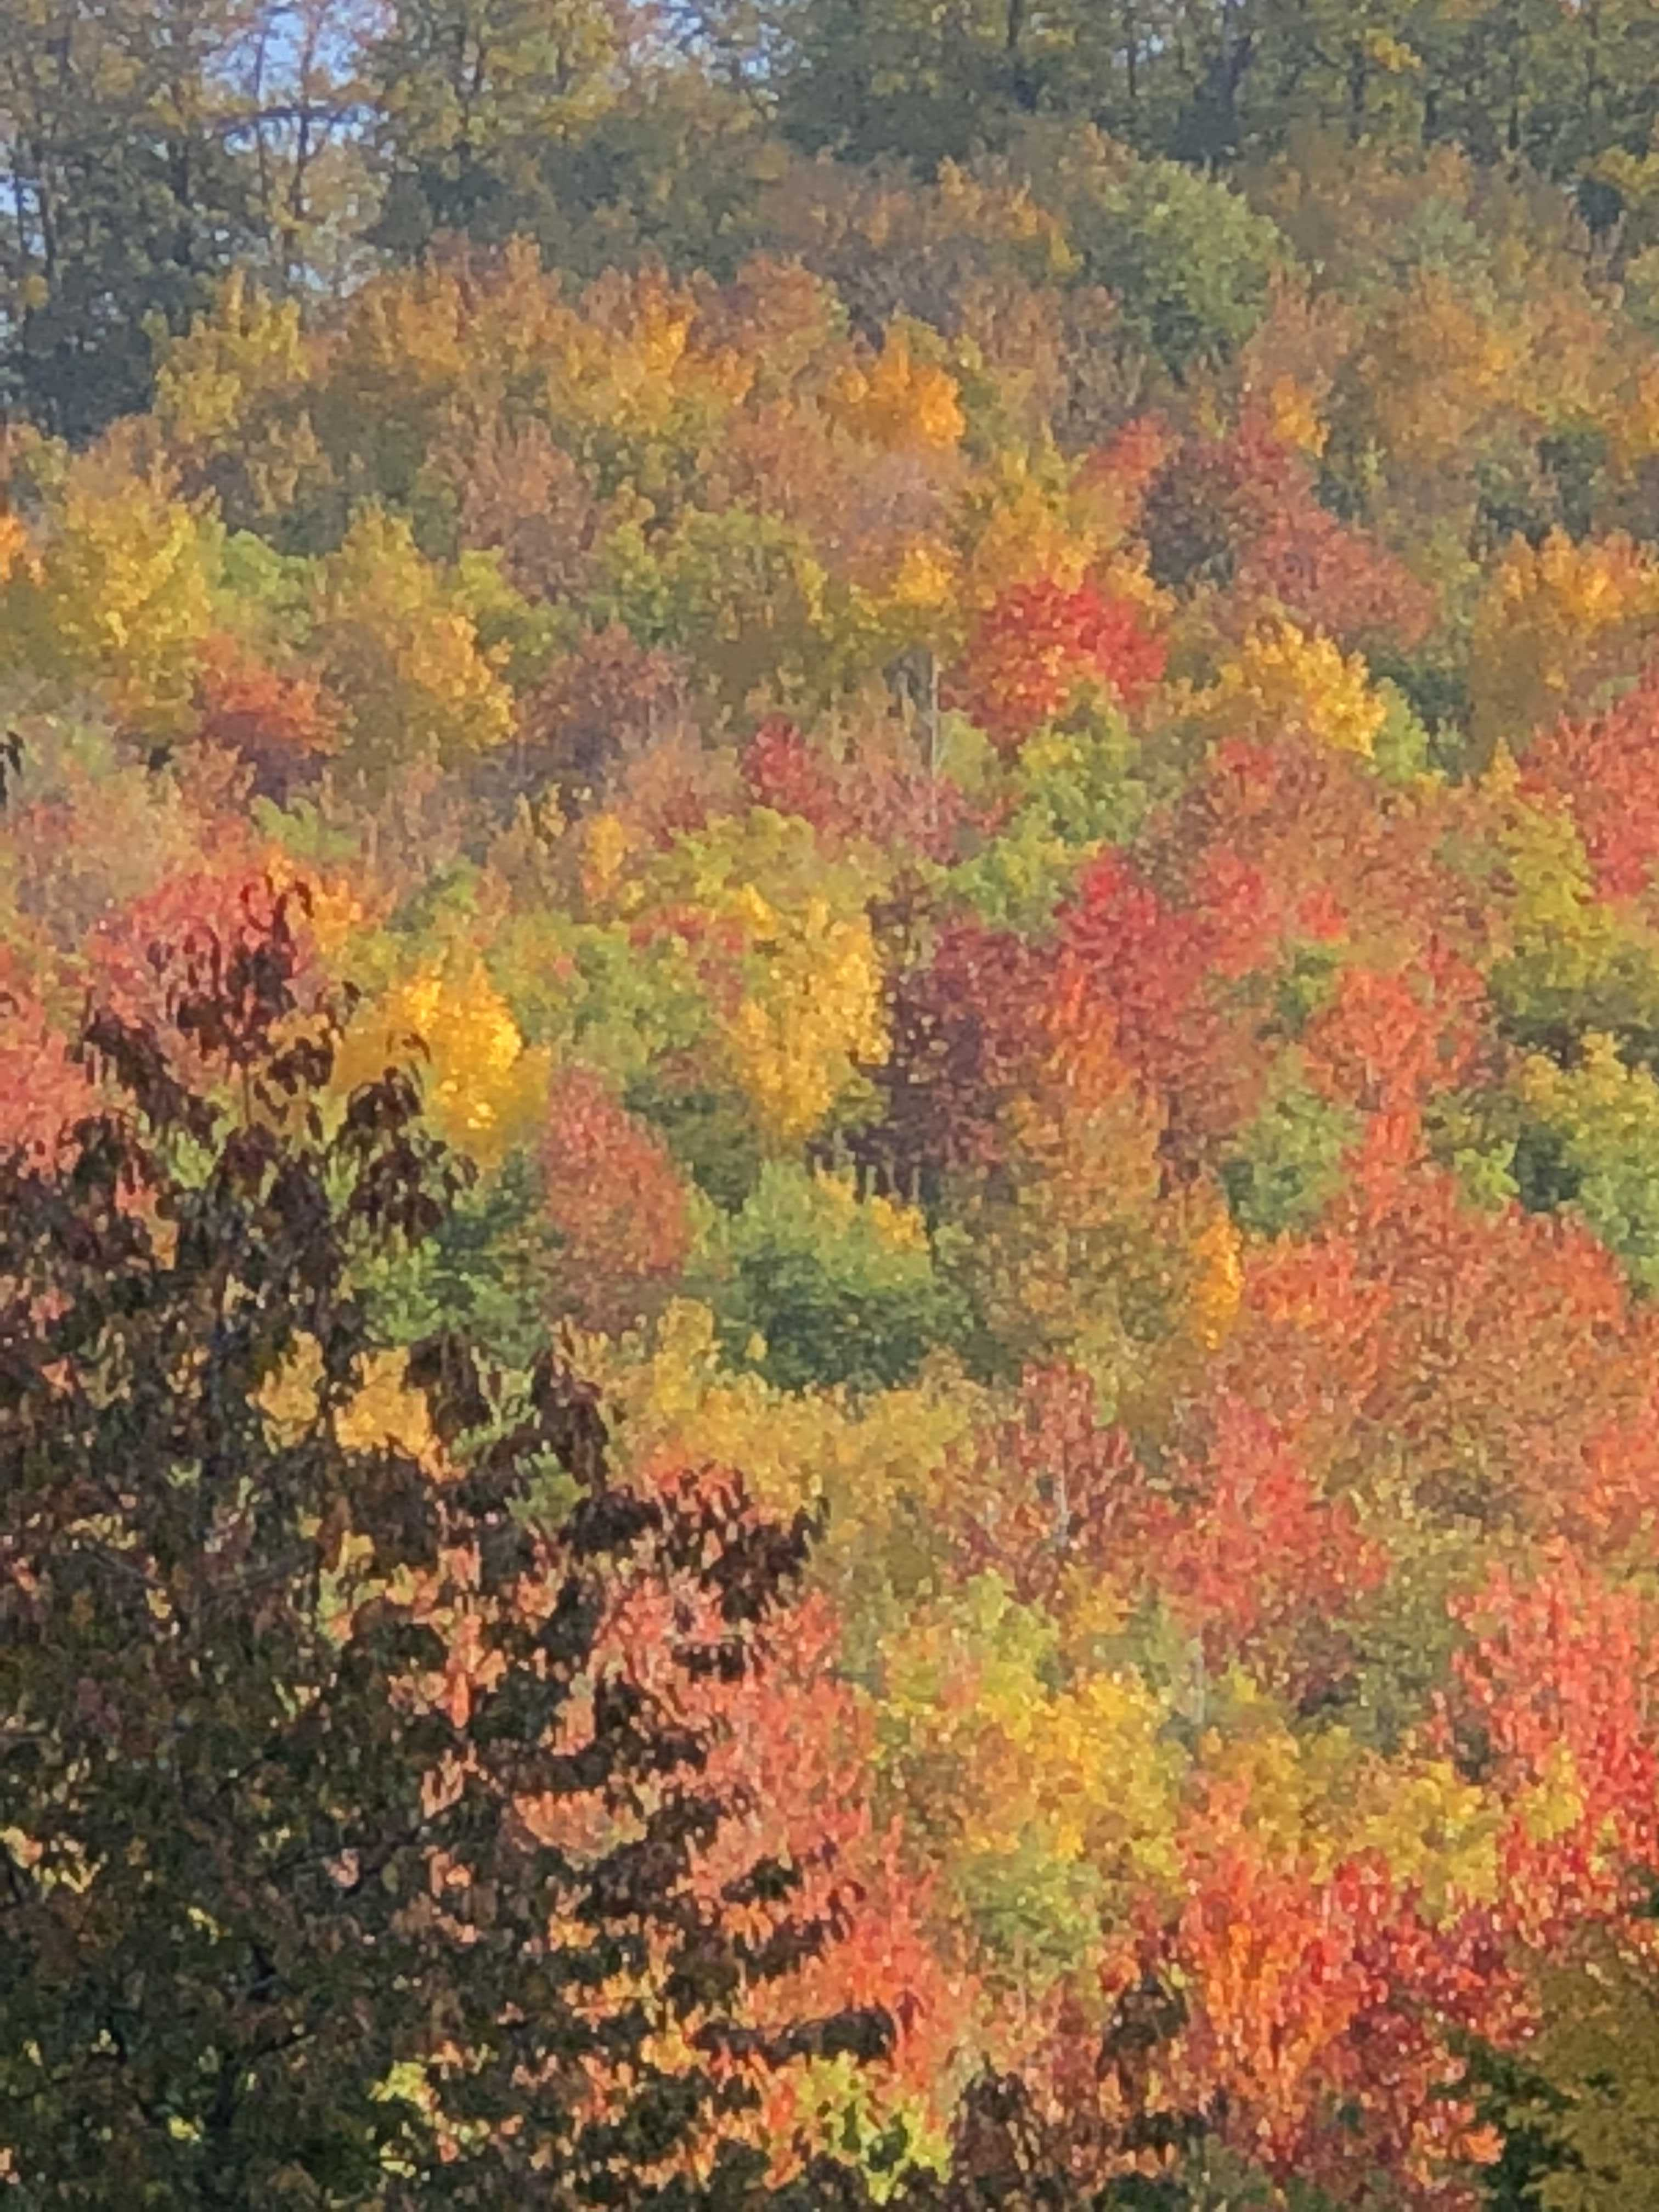 Colourful fall 2018 - Bükk Mountains